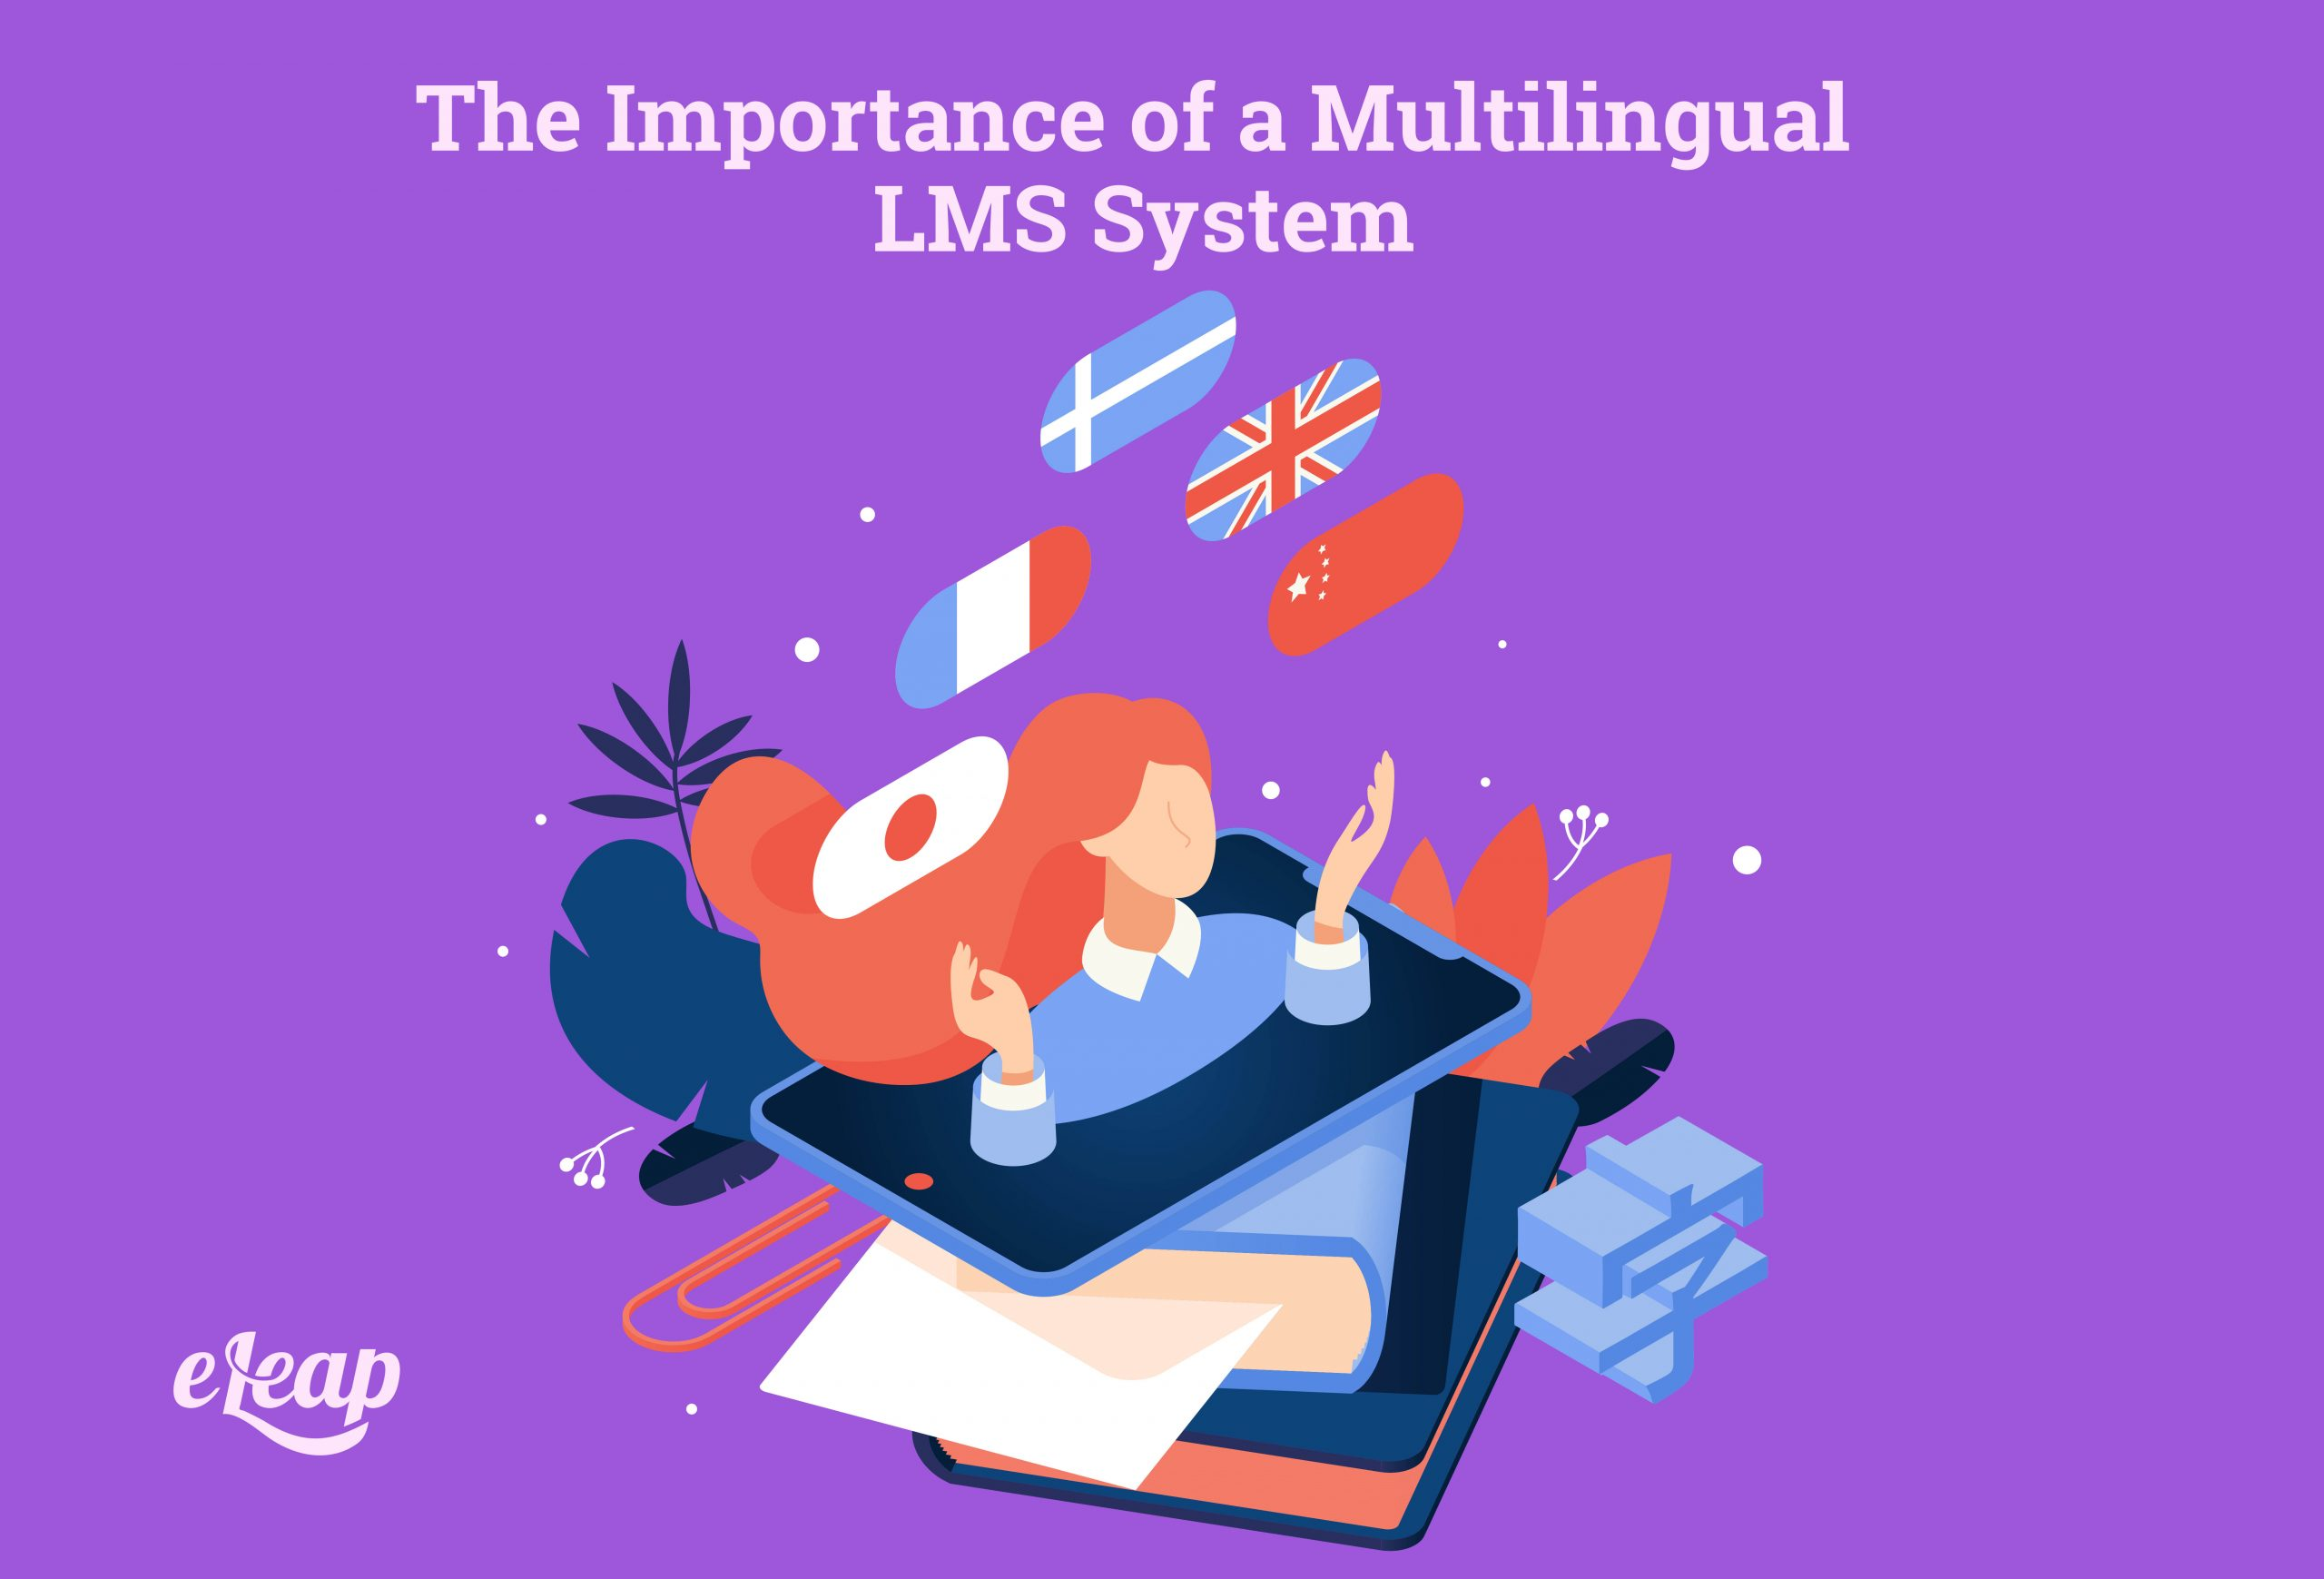 The Importance of a Multilingual LMS System